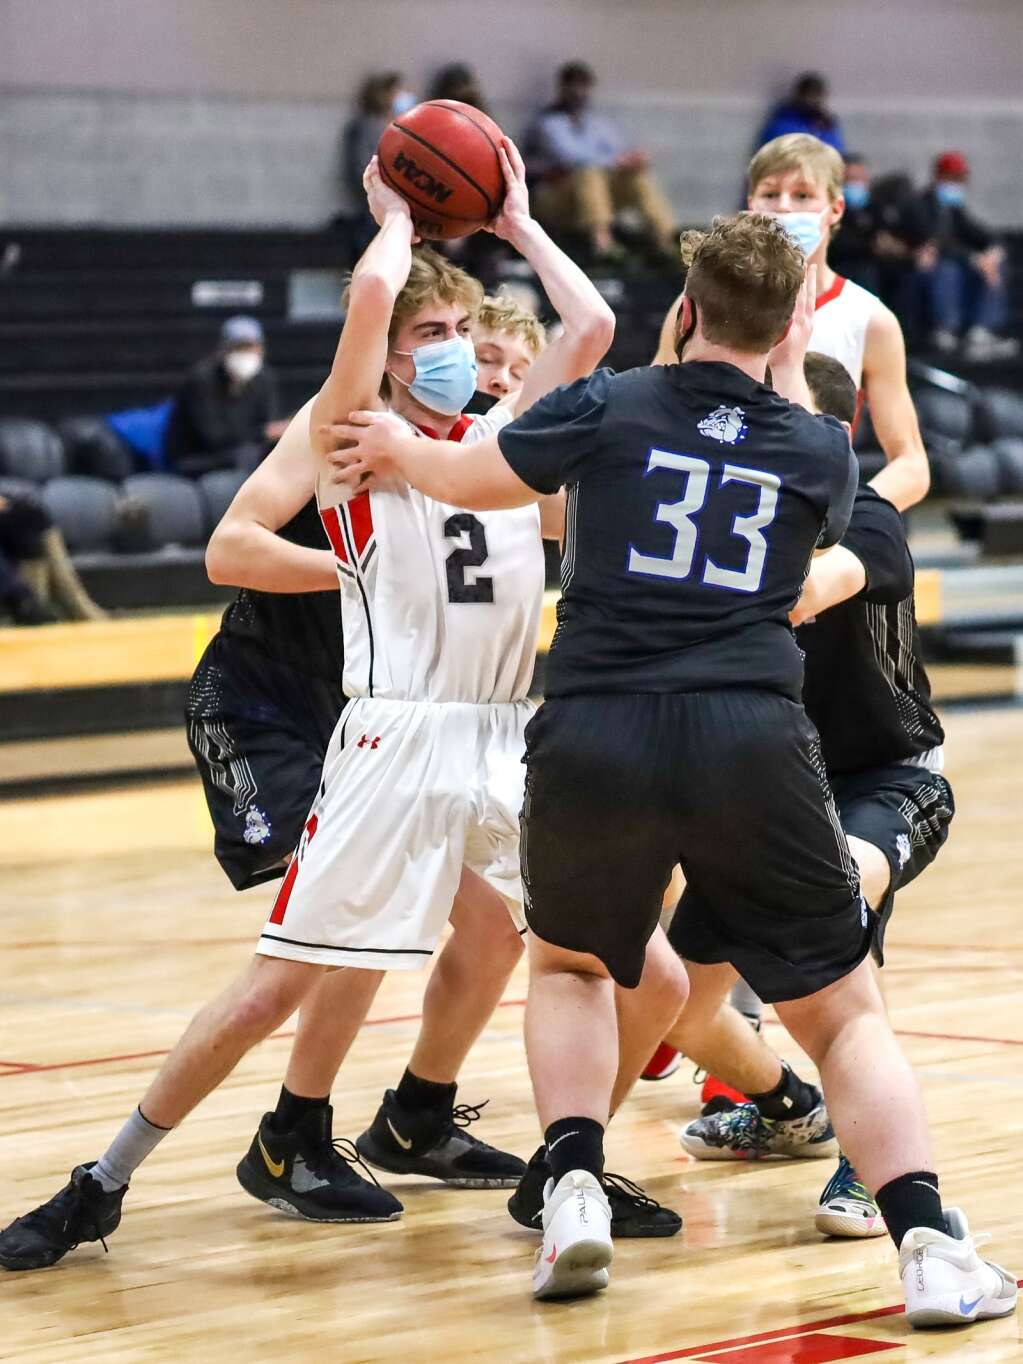 Aspen High School basketball player Luke Hollander is surrounded by Moffat County defenders on Saturday, March 6, 2021, inside the AHS gymnasium. Aspen won, 68-42. Photo by Austin Colbert/The Aspen Times.